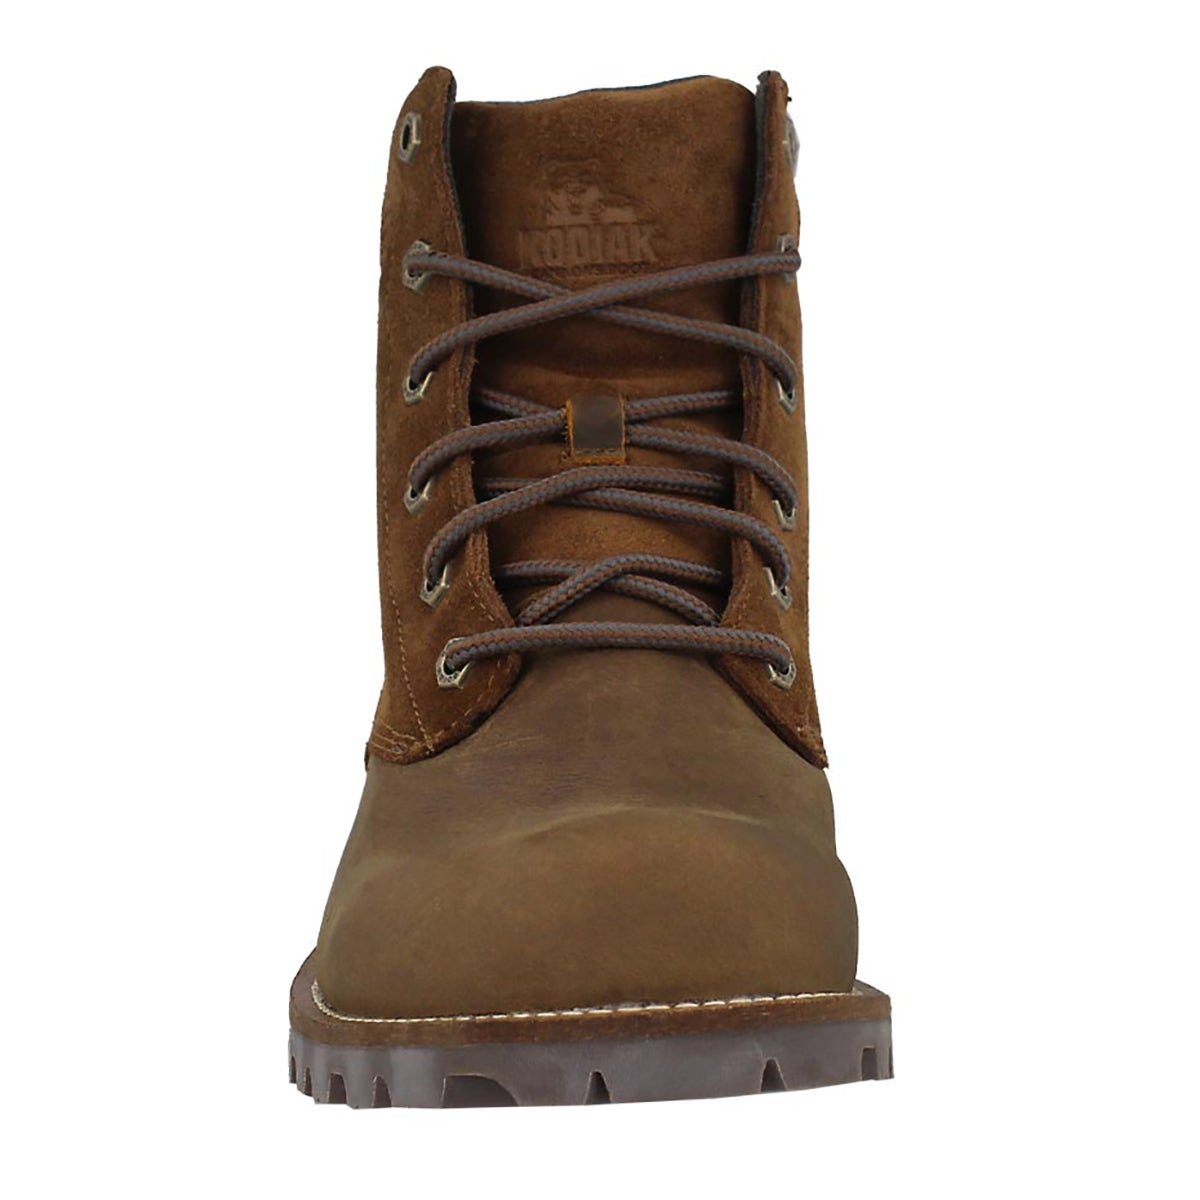 Mns Bronx gold wtpf ankle boot